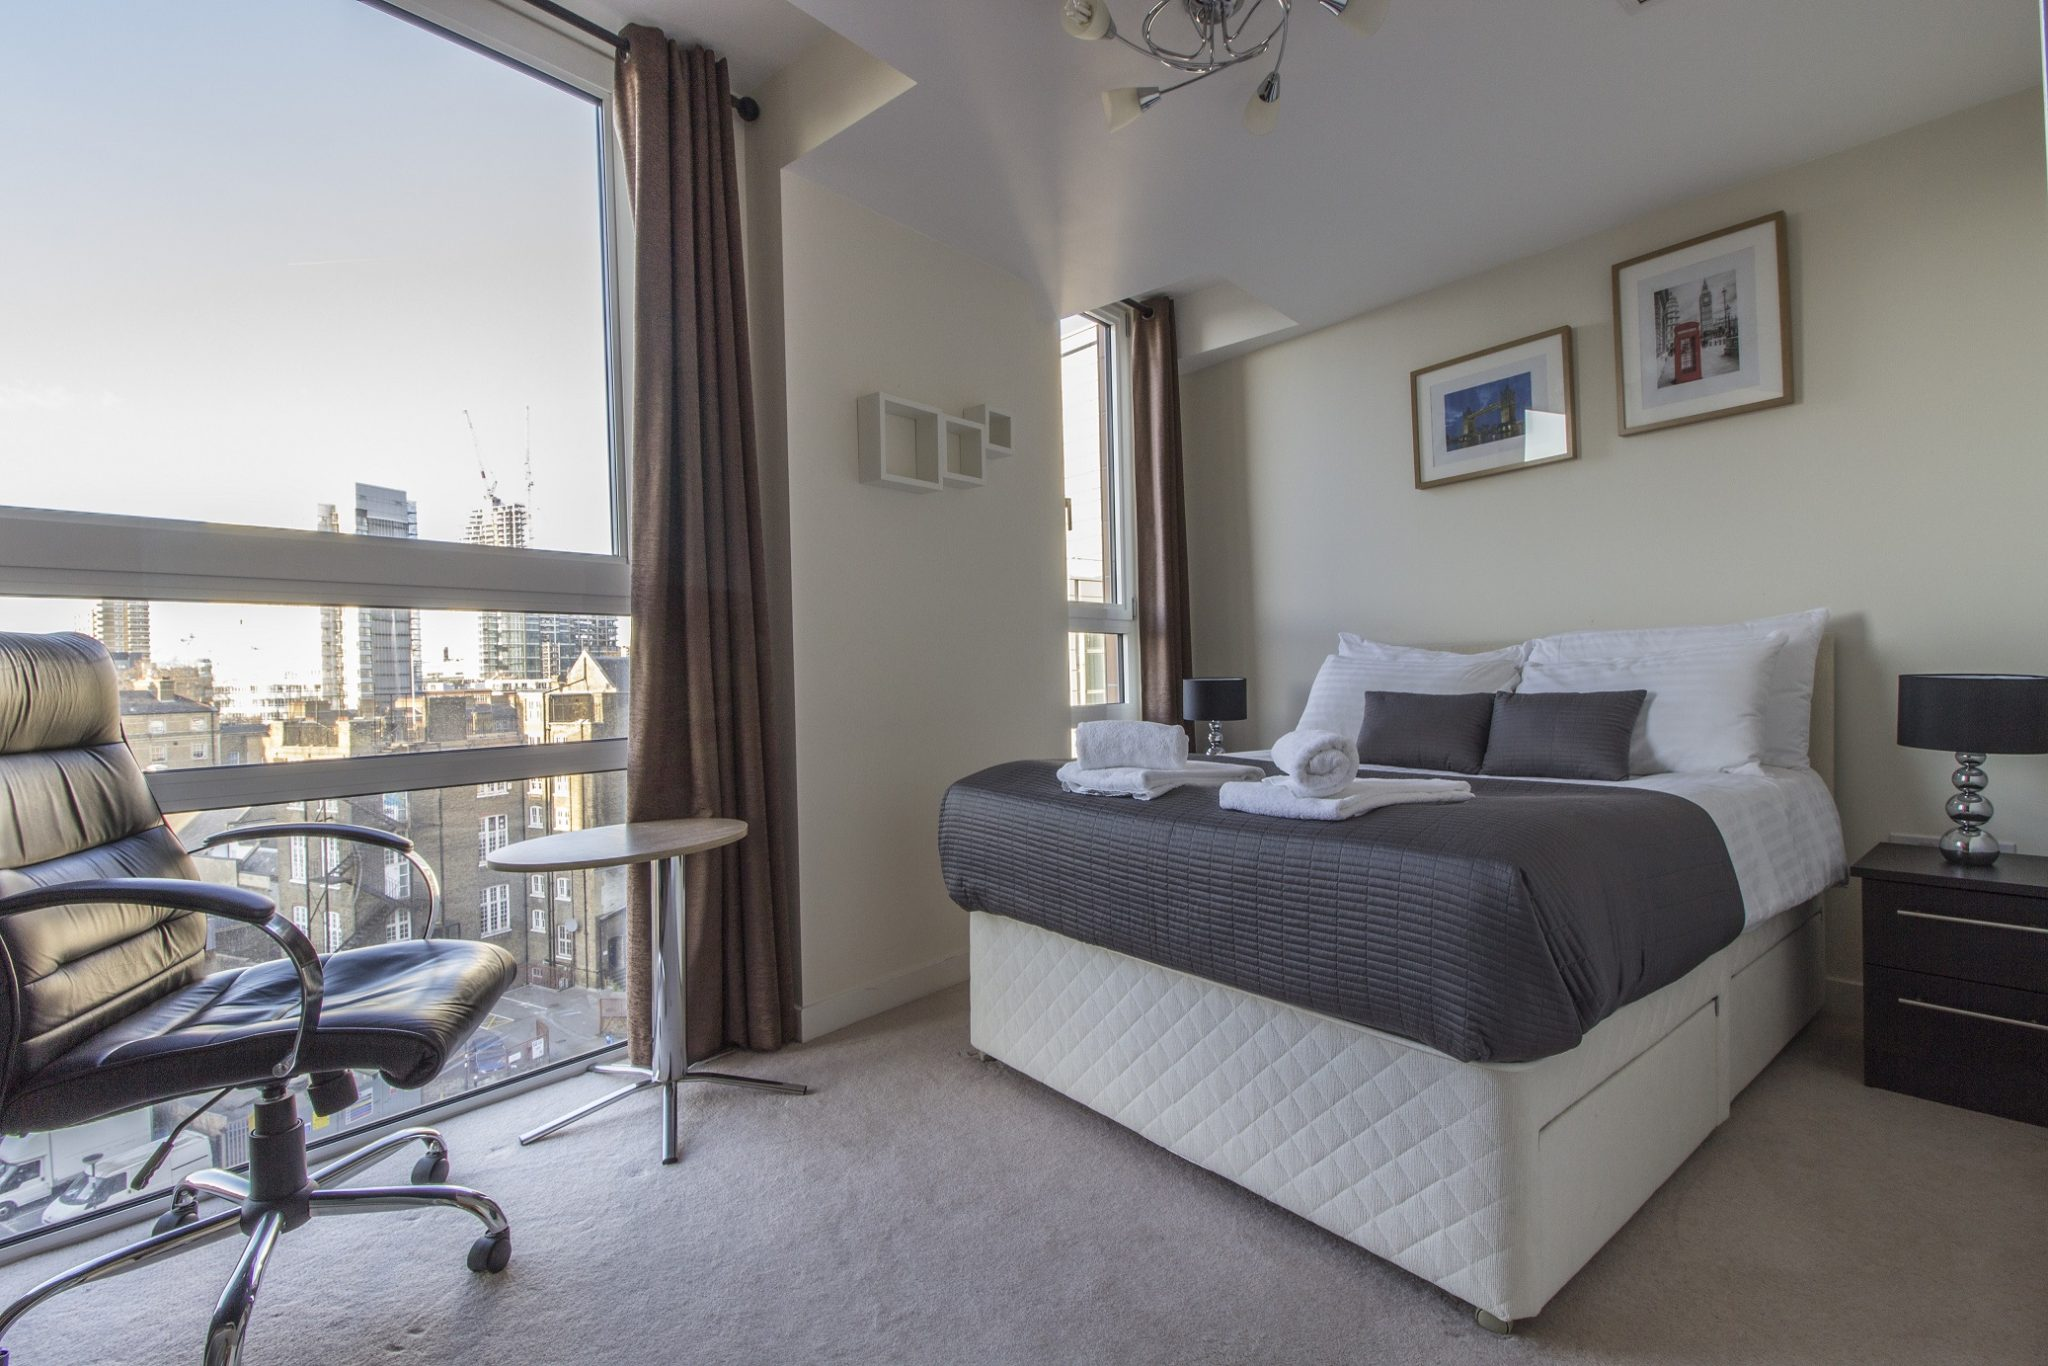 Short-Let-Accommodation-Barbican-|-Serviced-Apartments-London-City-|-Short-Let-Accommodation-Barbican-Centre-|-Award-Winning---Quality-Accredited-|-BOOK-NOW---Urban-Stay